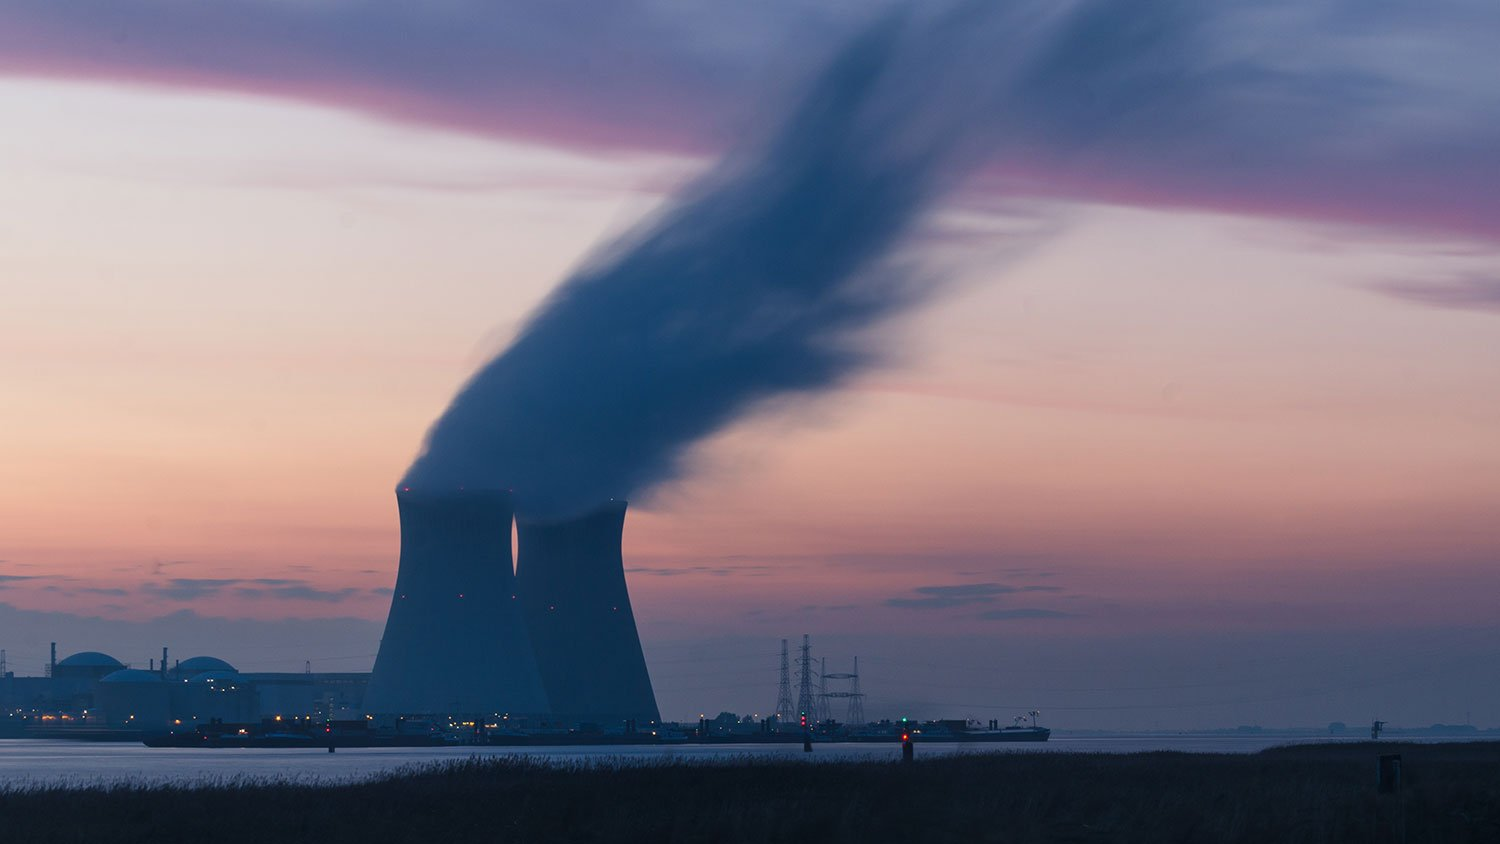 The Ins and Outs of Nuclear Energy